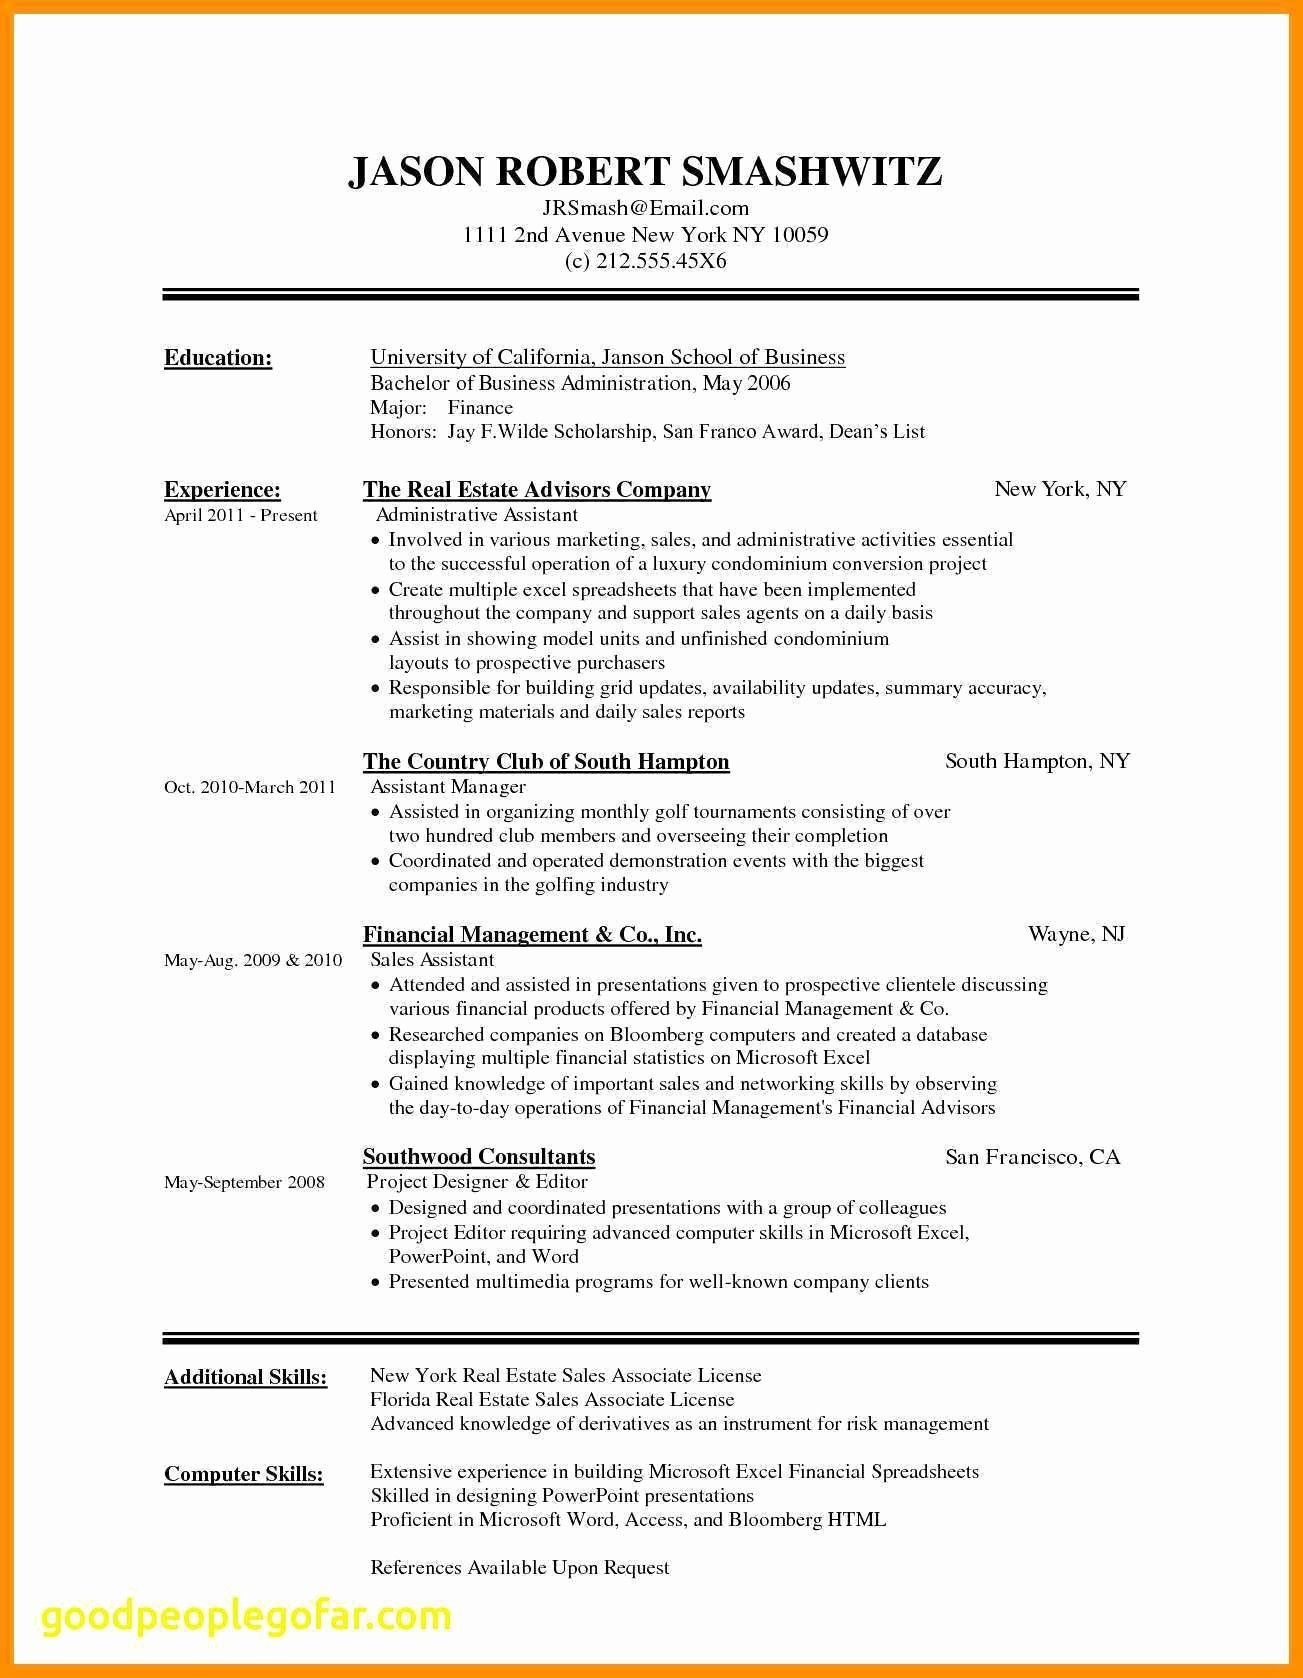 Free Resume Database - Free Resume Template Download Lovely Cfo Resume New Template Writing